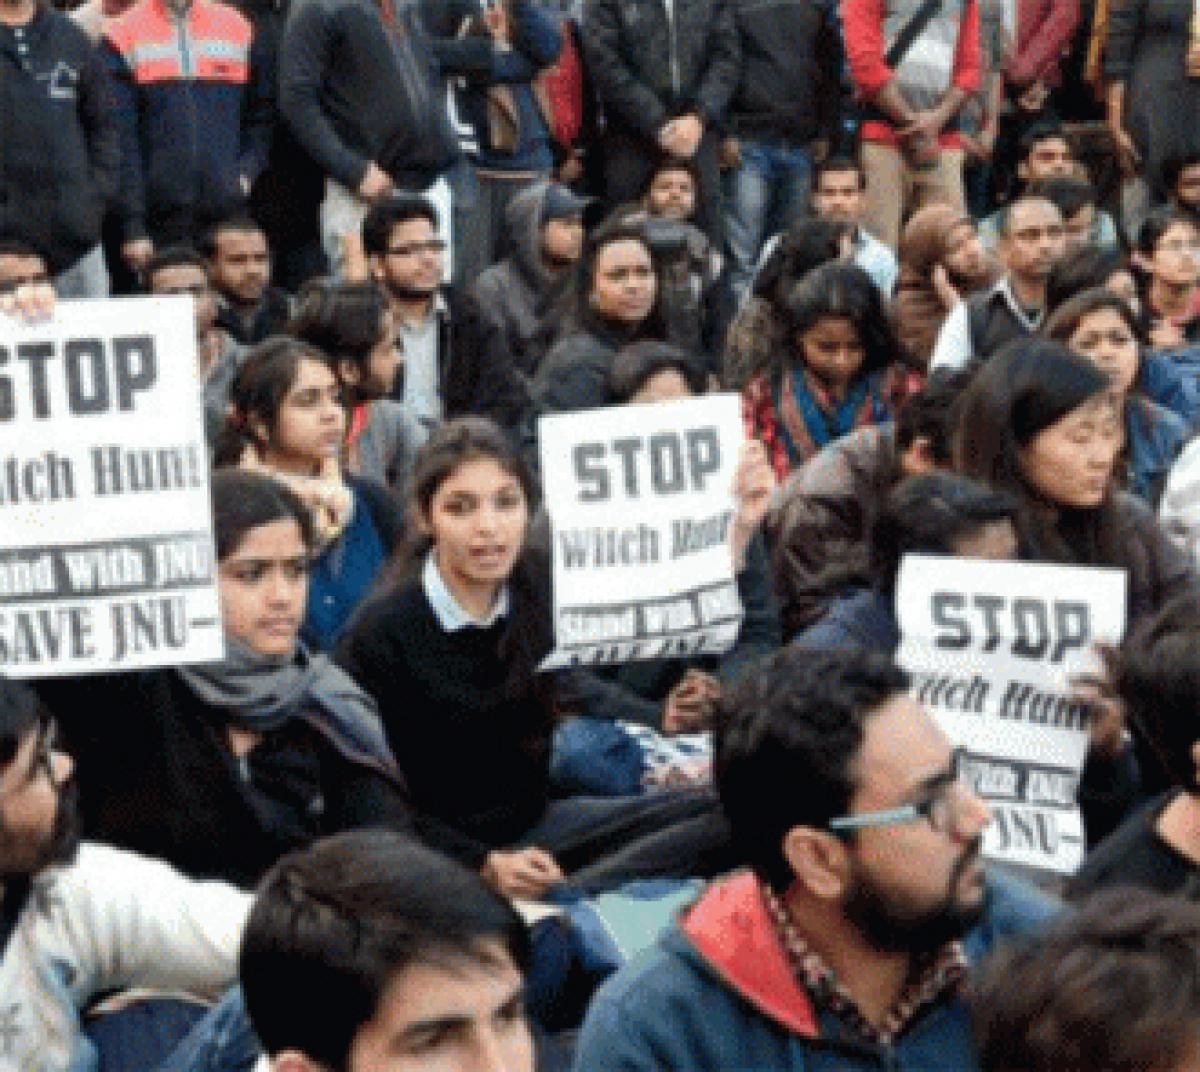 JNU students get support from Indian Americans